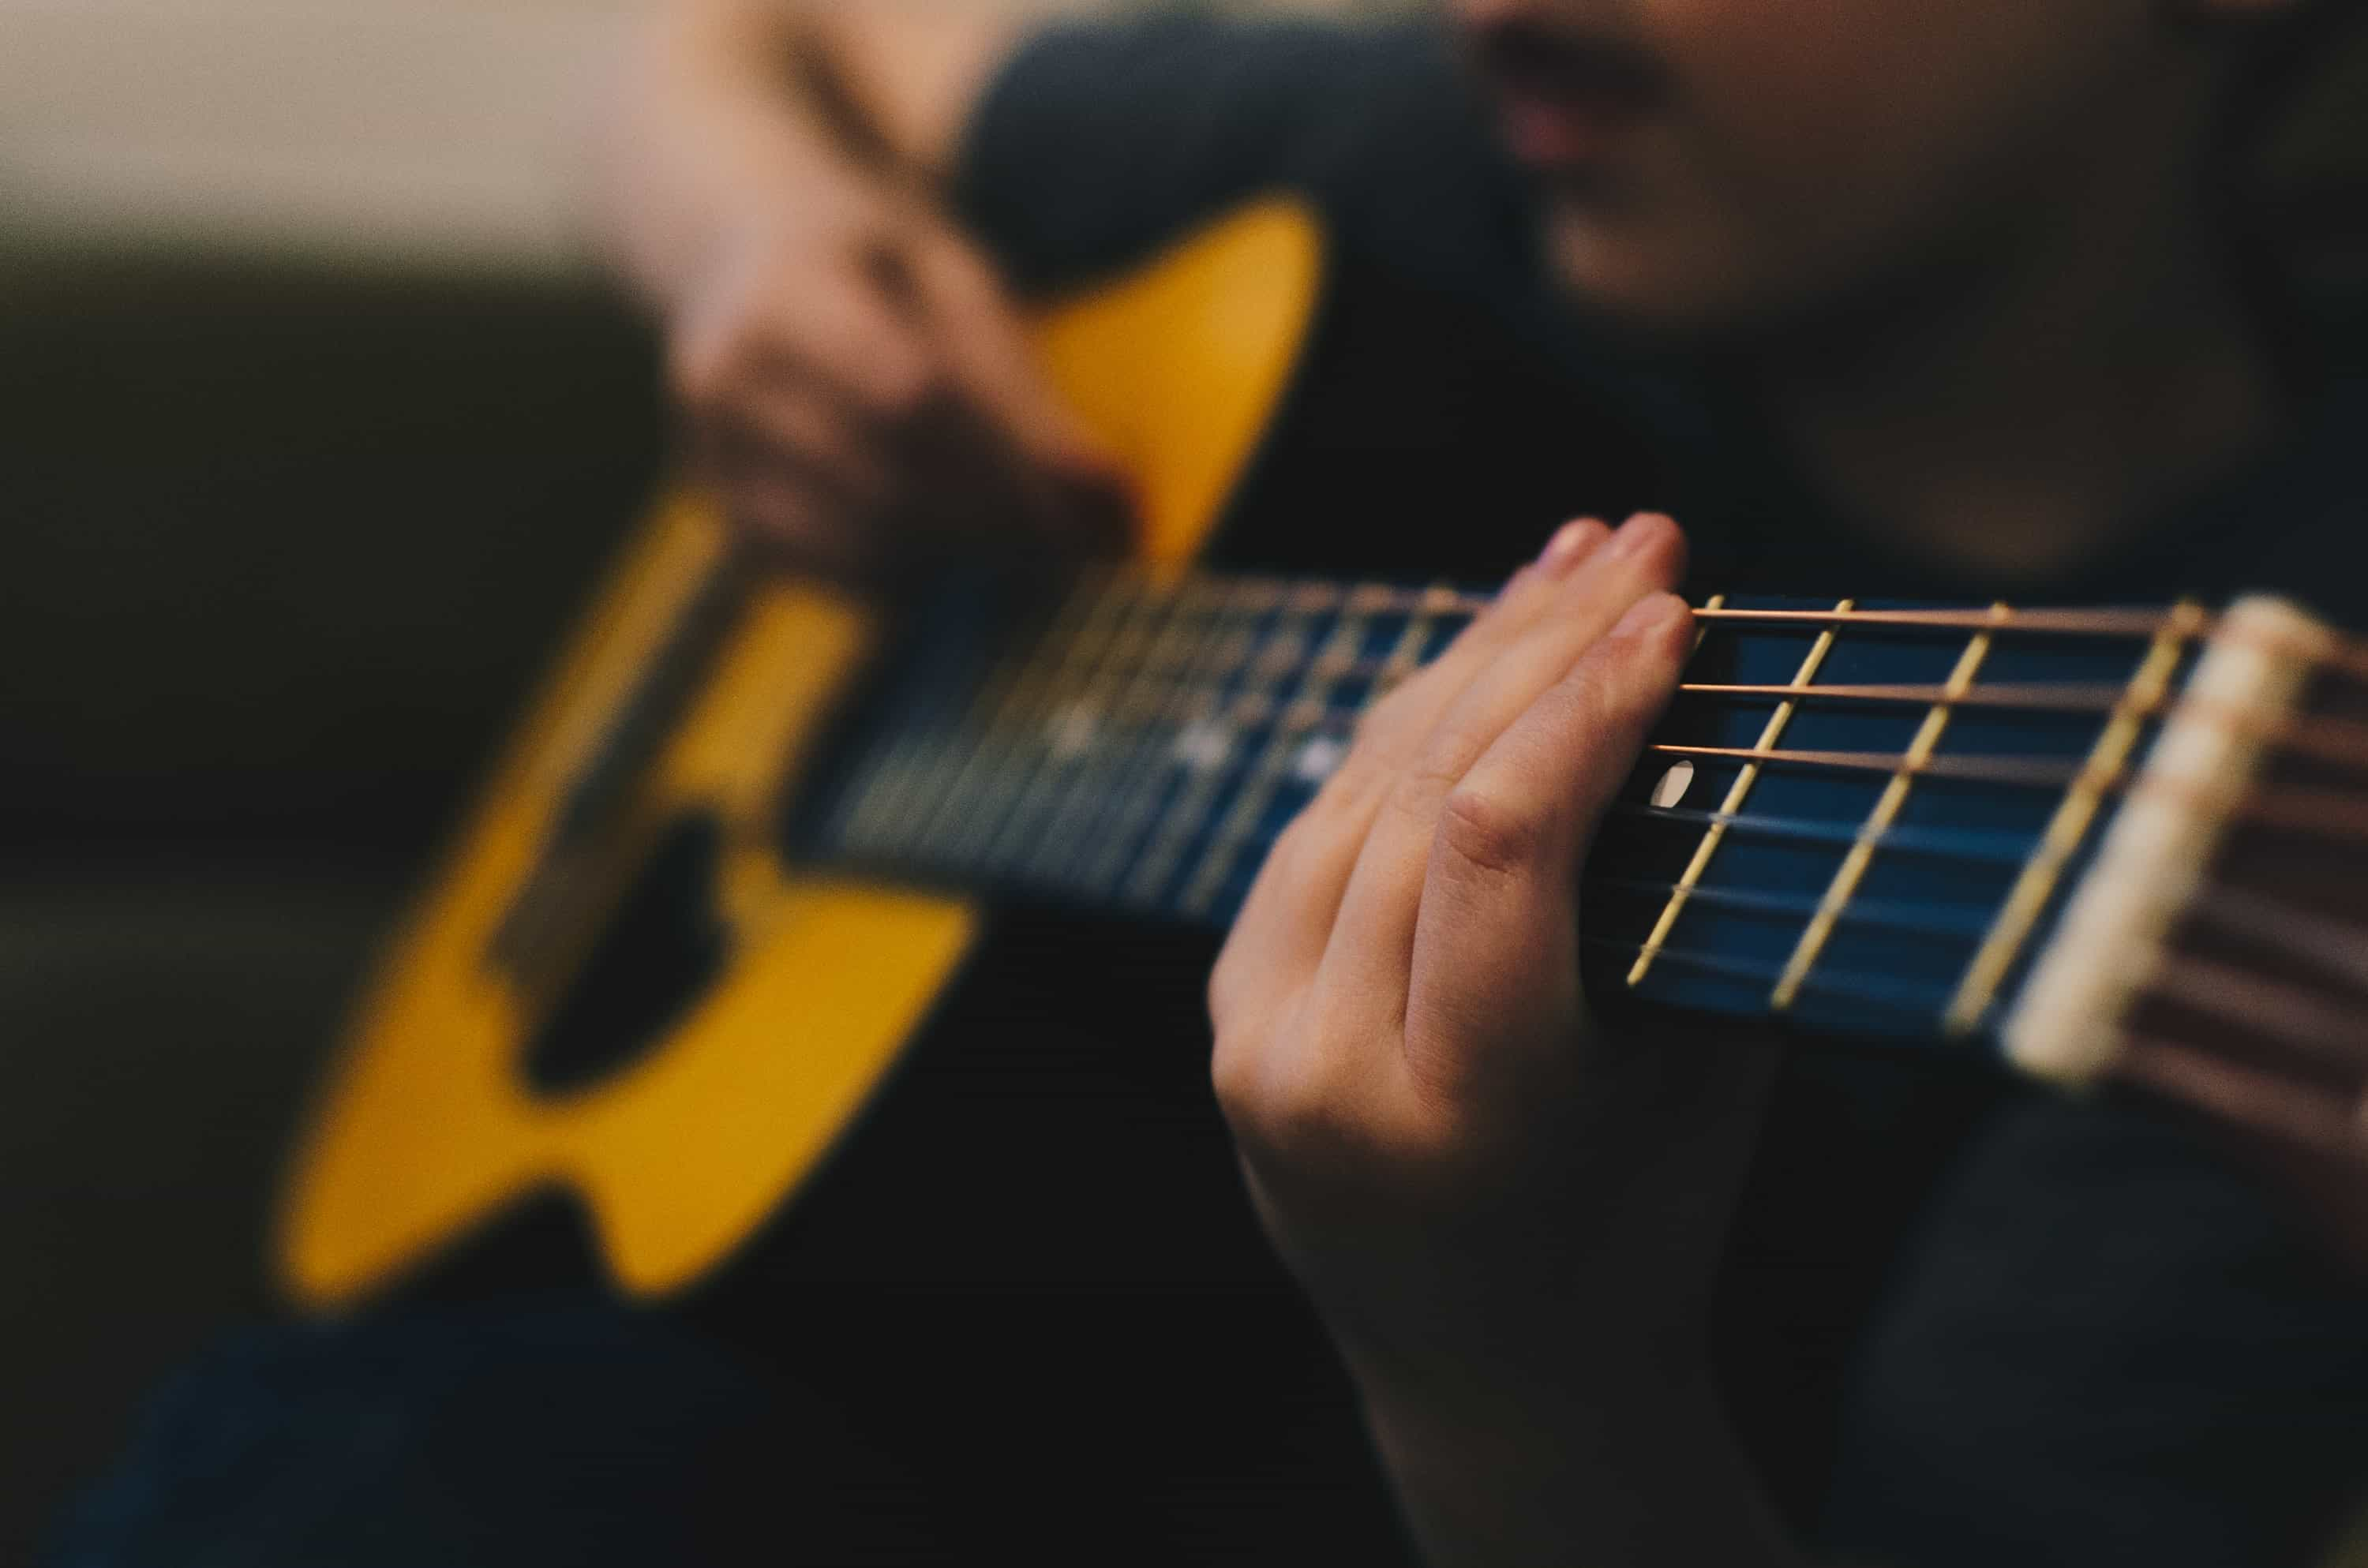 Wellbeing news round-up: Self-care, music, and mental health